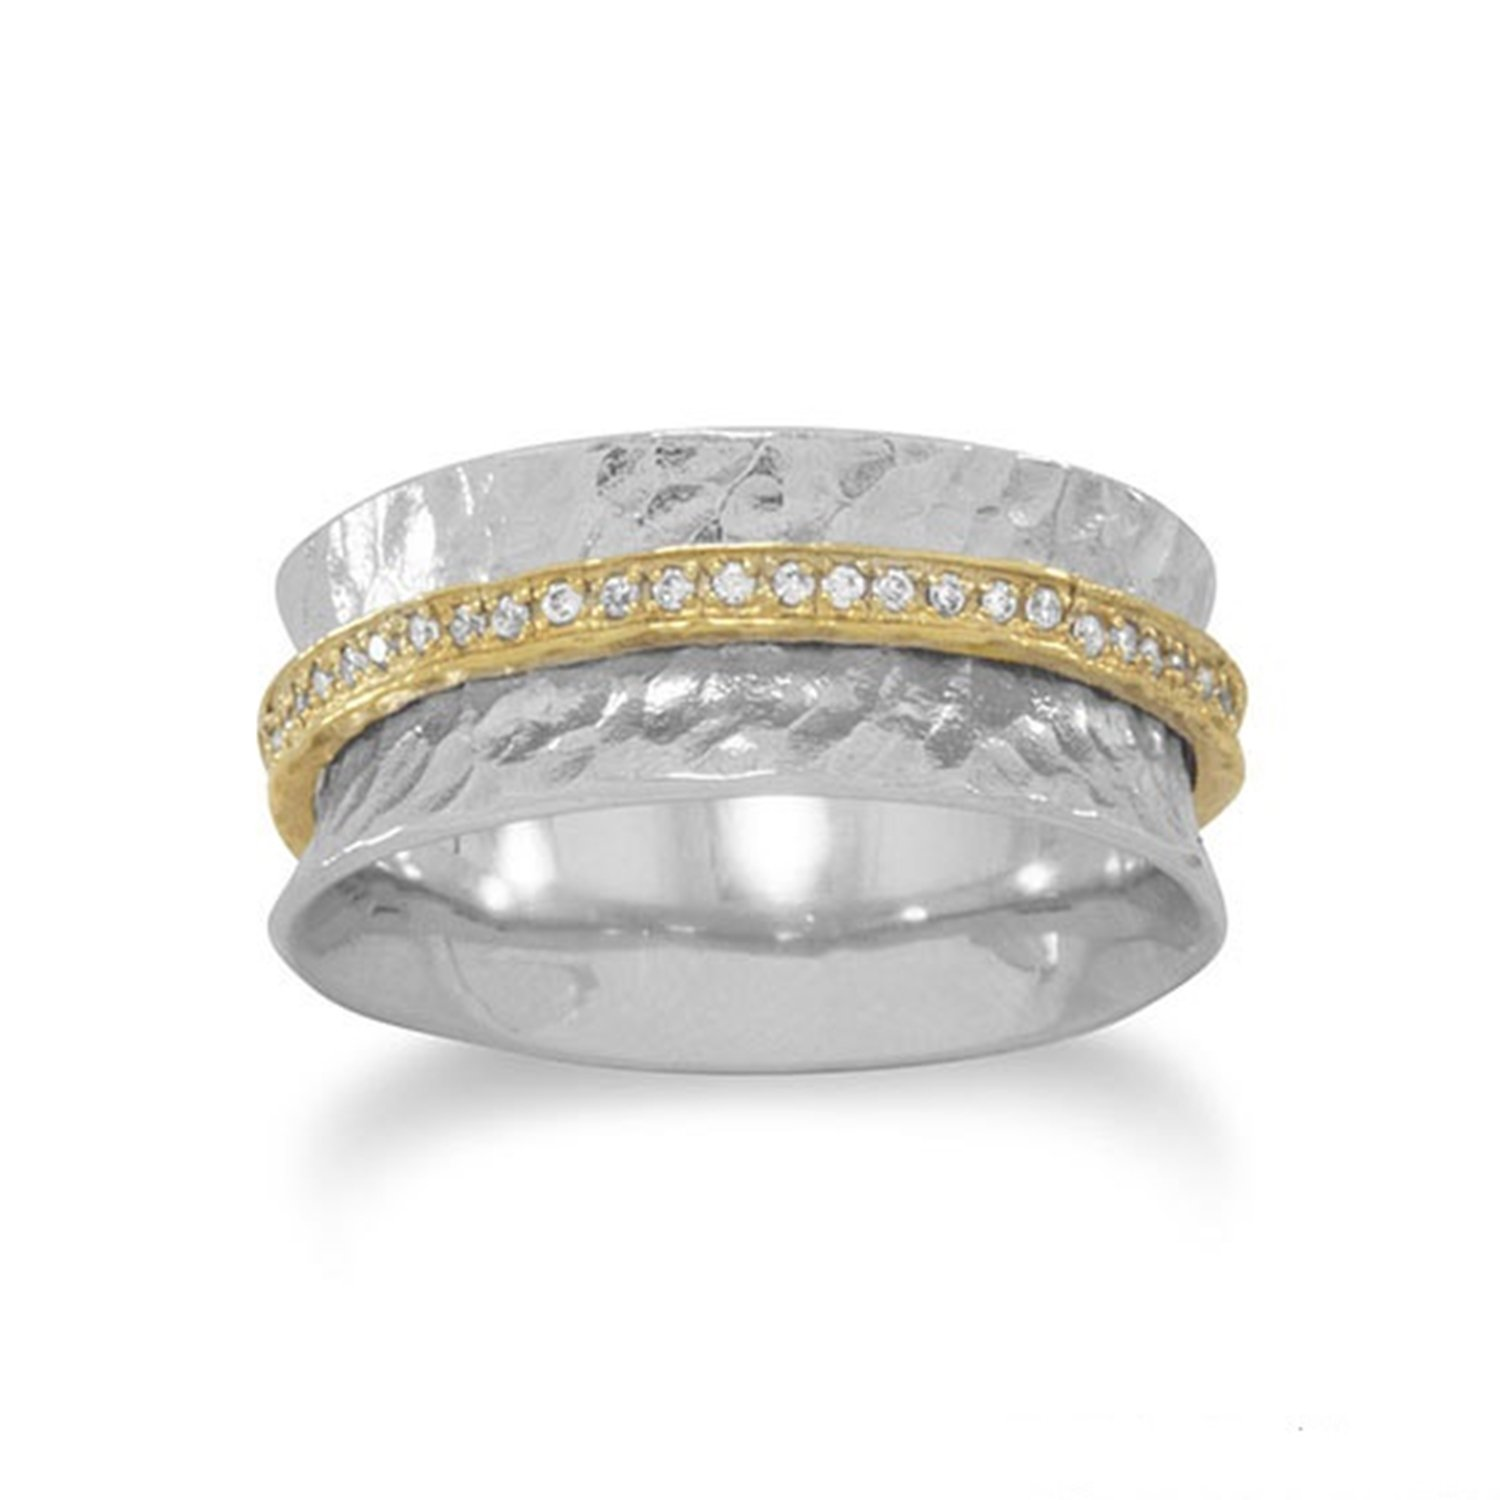 Two-tone Hammered Band Ring with Center Gold-plated Cubic Zirconia, 5